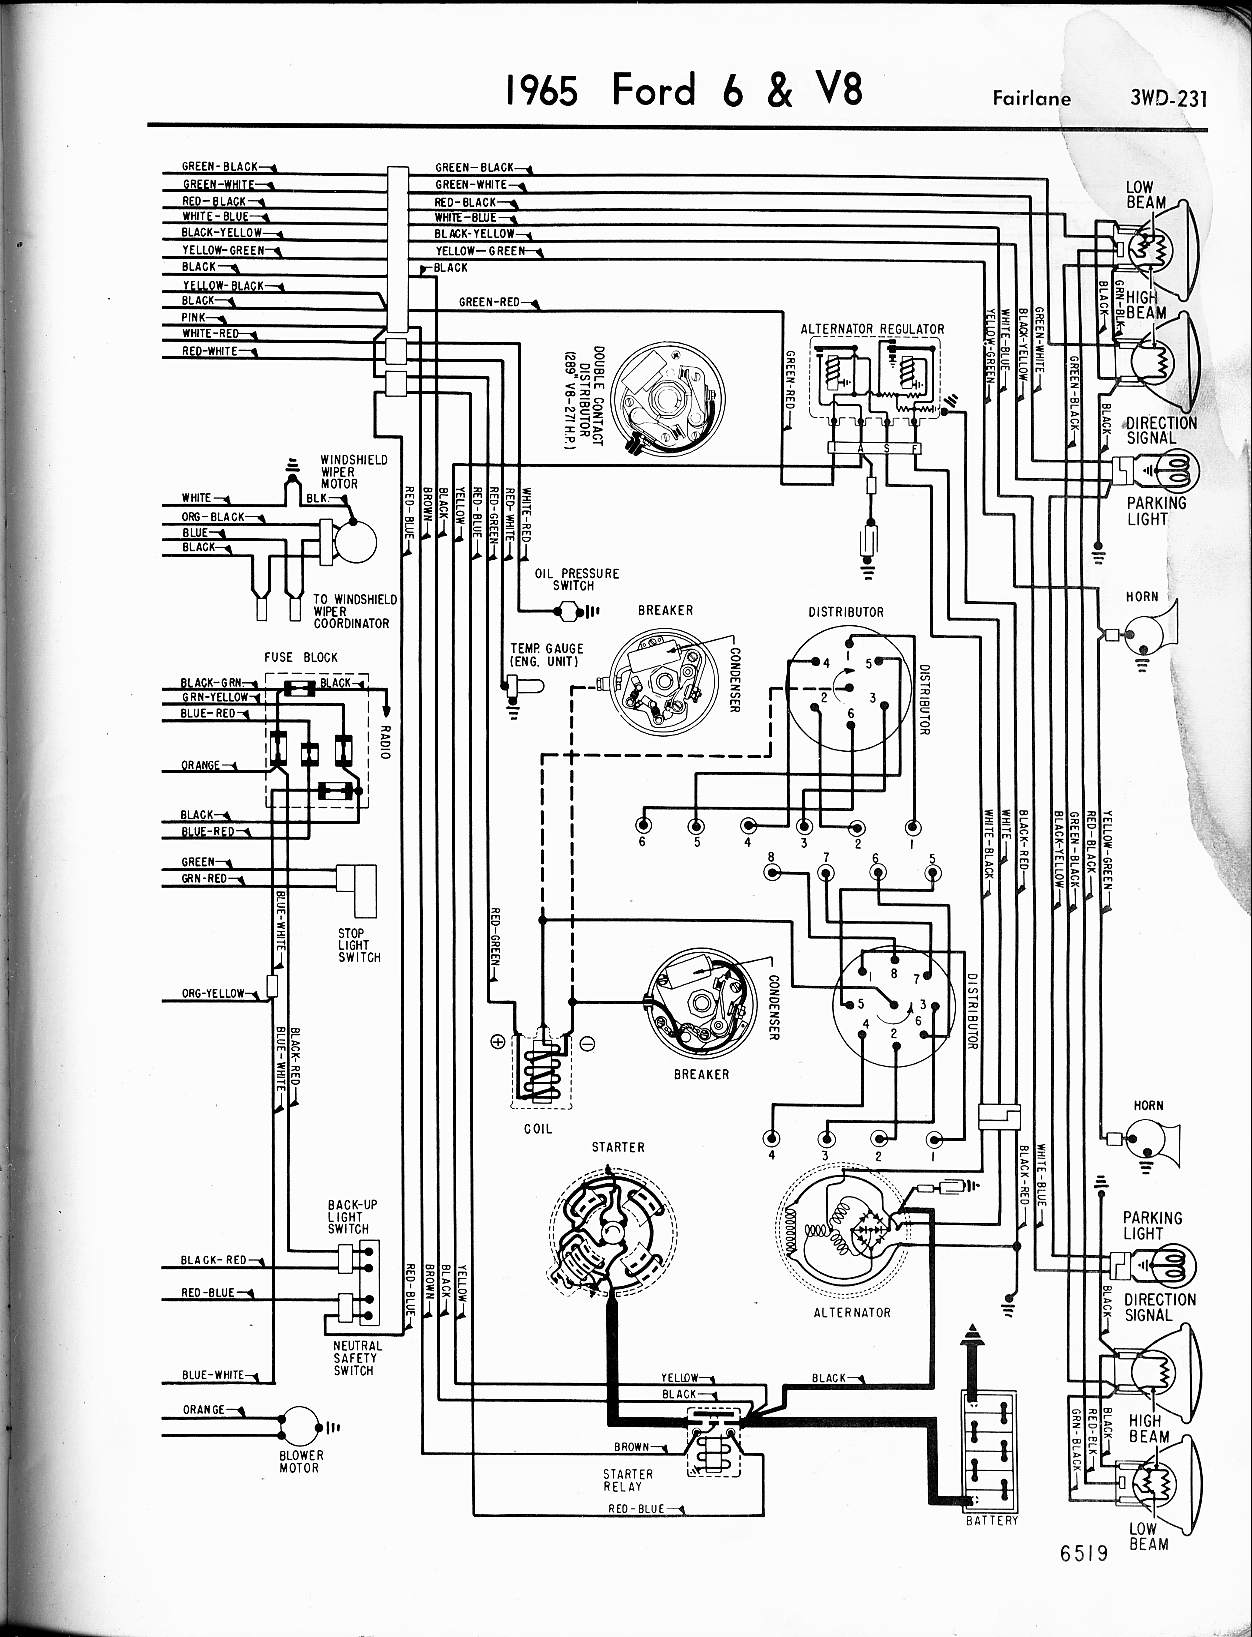 1968 Galaxie 500 Wiring Diagram - Wiring Diagram K7 on